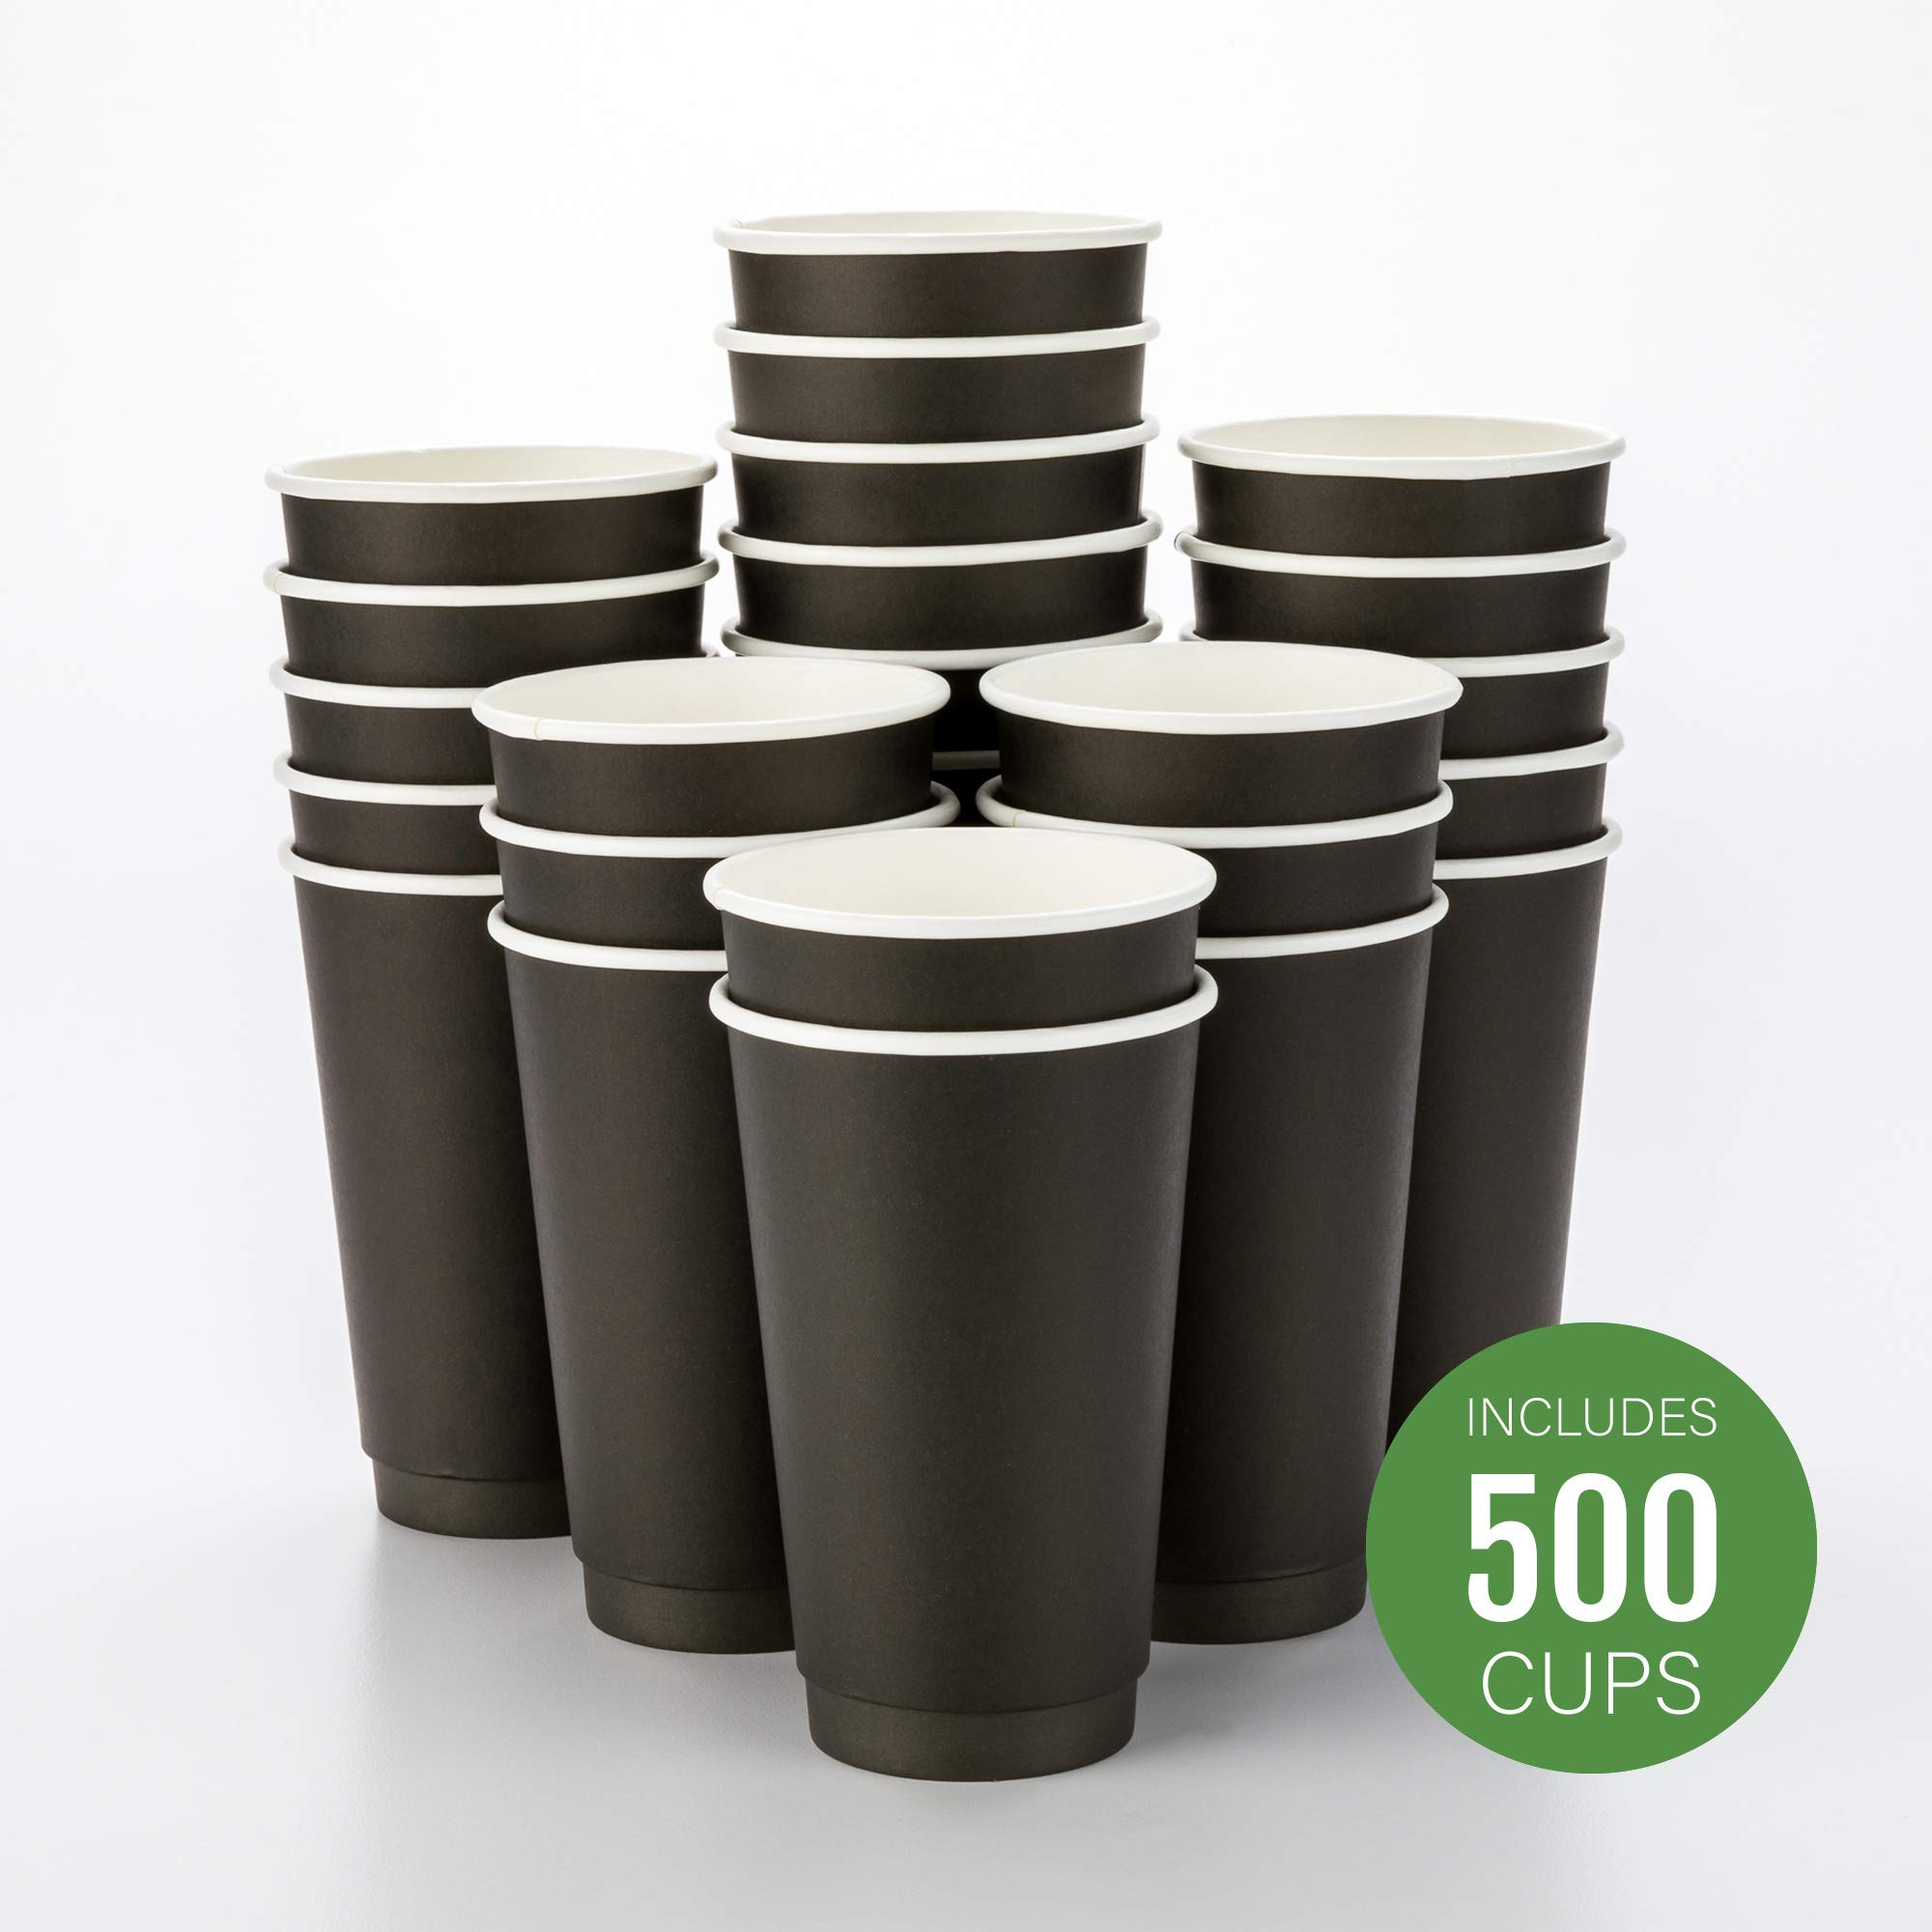 500-CT Disposable Black 16-oz Hot Beverage Cups with Double Wall Design: No Need for Sleeves - Perfect for Cafes - Eco Friendly Recyclable Paper - Insulated - Wholesale Takeout Coffee Cup by Restaurantware